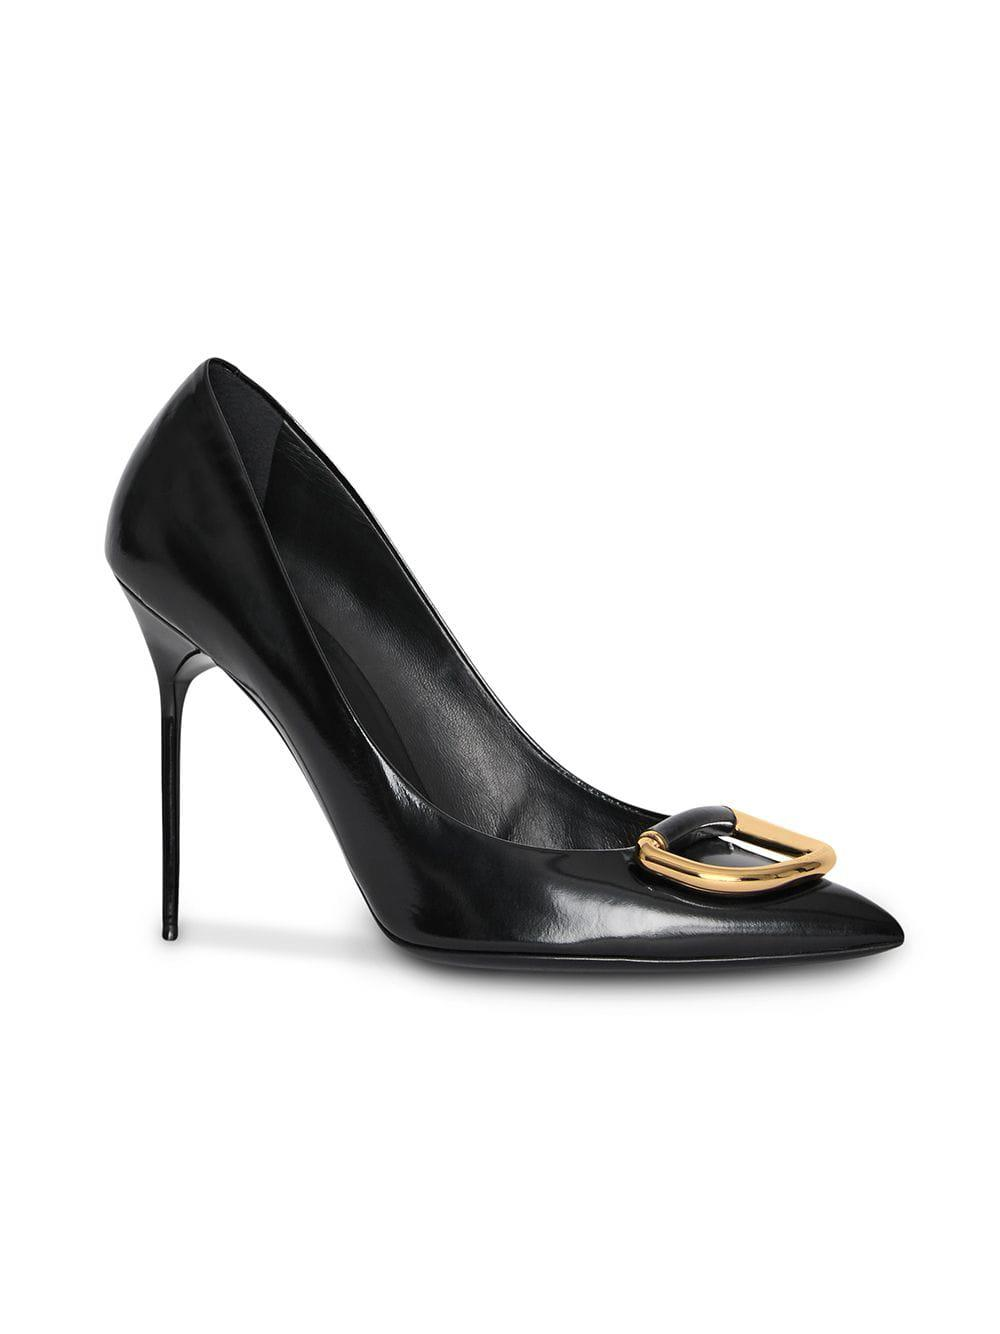 7f335e6262f4 Lyst - Burberry The Patent Leather D-ring Stiletto in Black